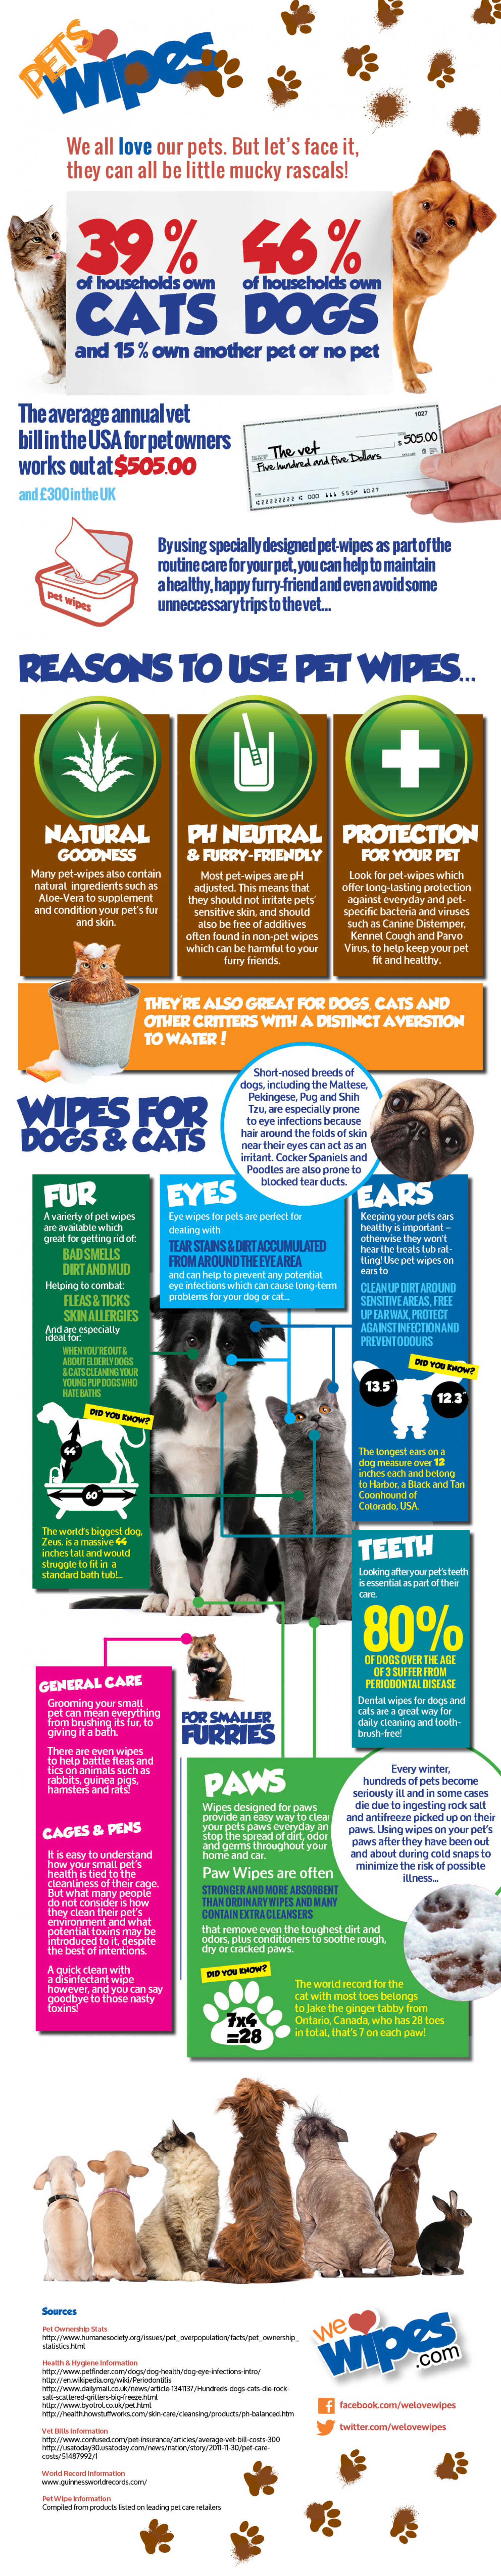 Benefits of Pet Wipes Infographic